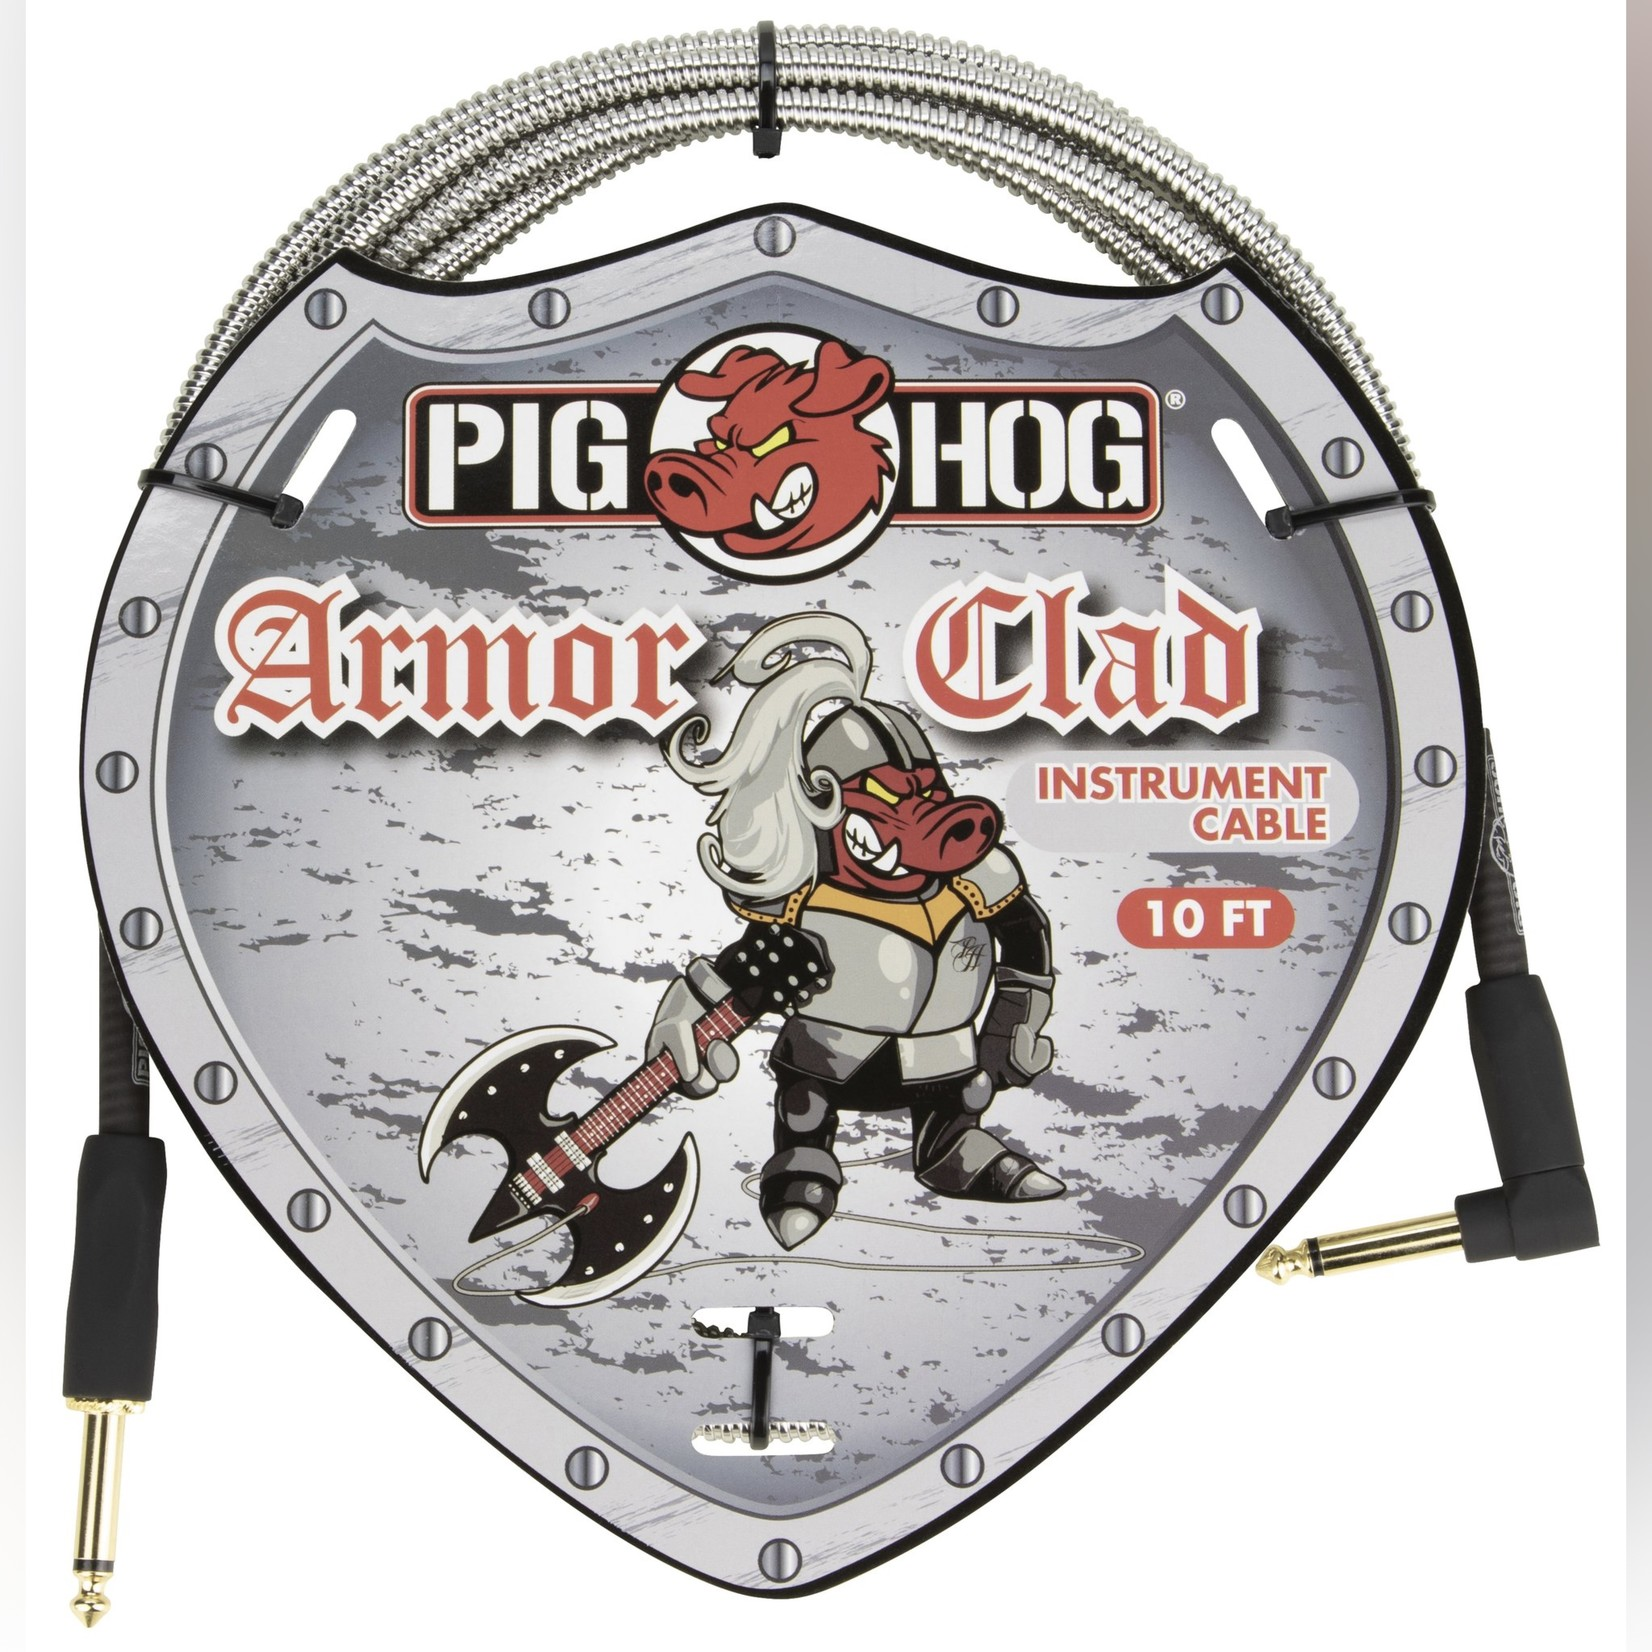 """Pig Hog Pig Hog """"Armor Clad"""" Instrument Cable, 10 Feet, 1/4""""-1/4"""" Right Angle, Industrial Look (PHAC-10R)"""